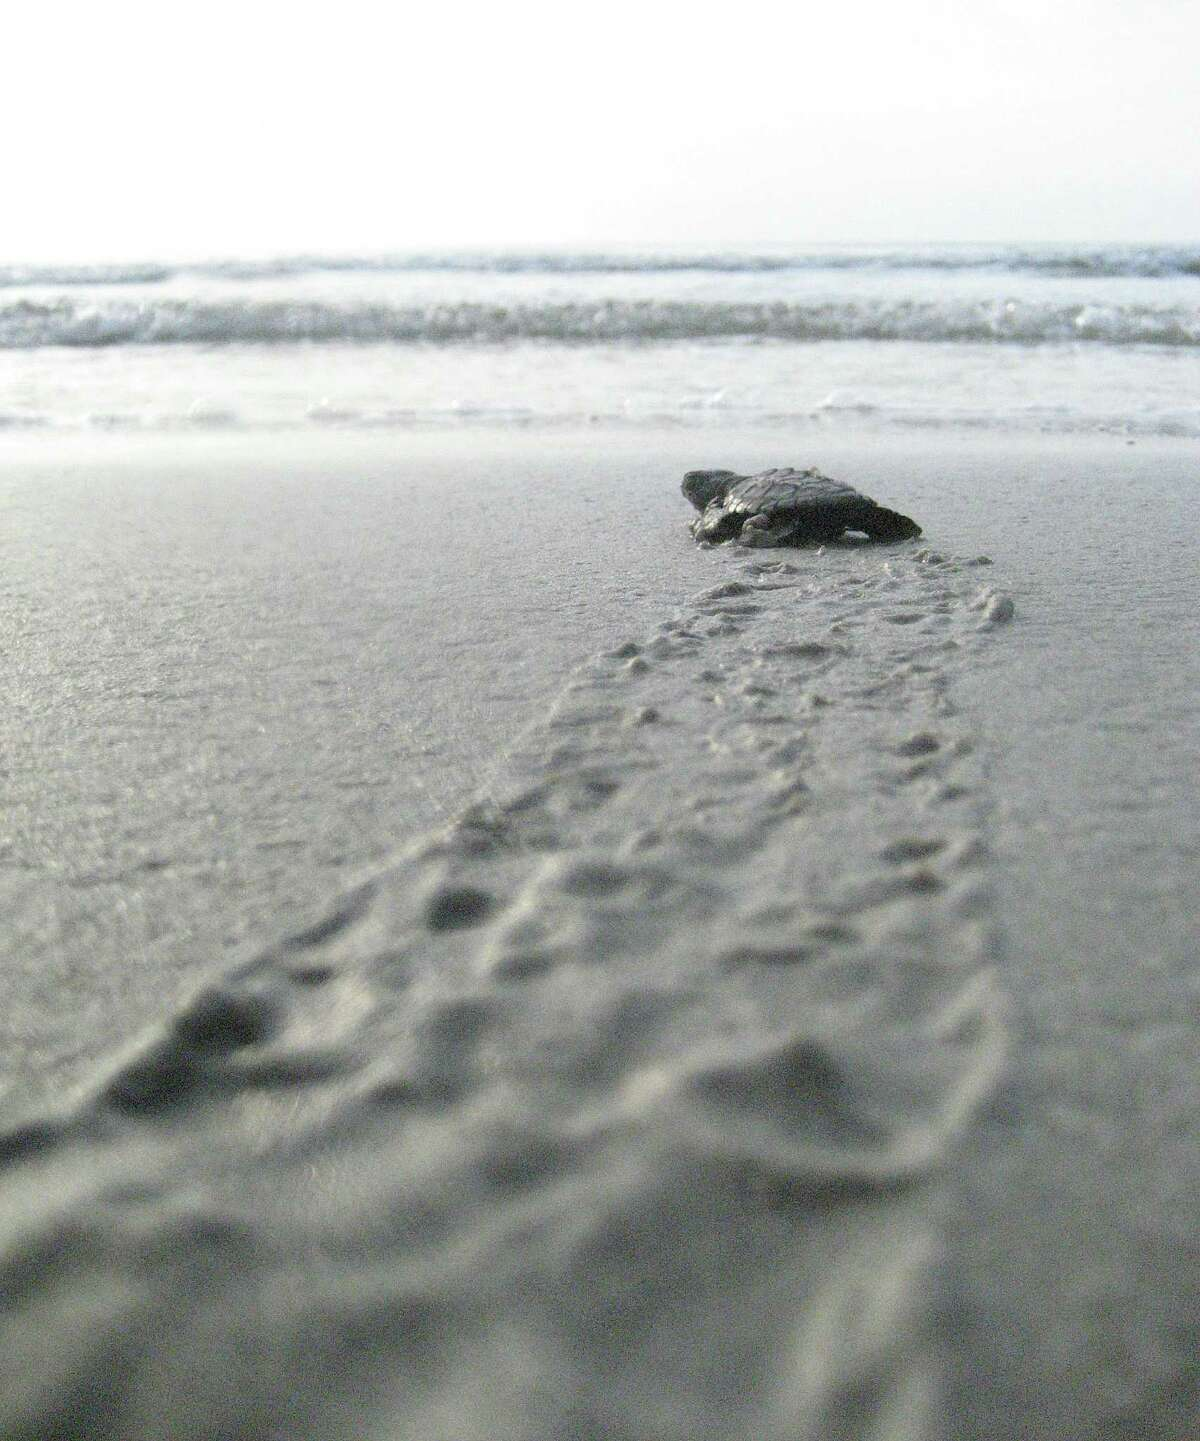 The endangered Kemp's ridley sea turtle will be placed in harm's way with the suspension of freshwater, an environmental group warned. This will diminish the turtle's primary food source, blue crabs.